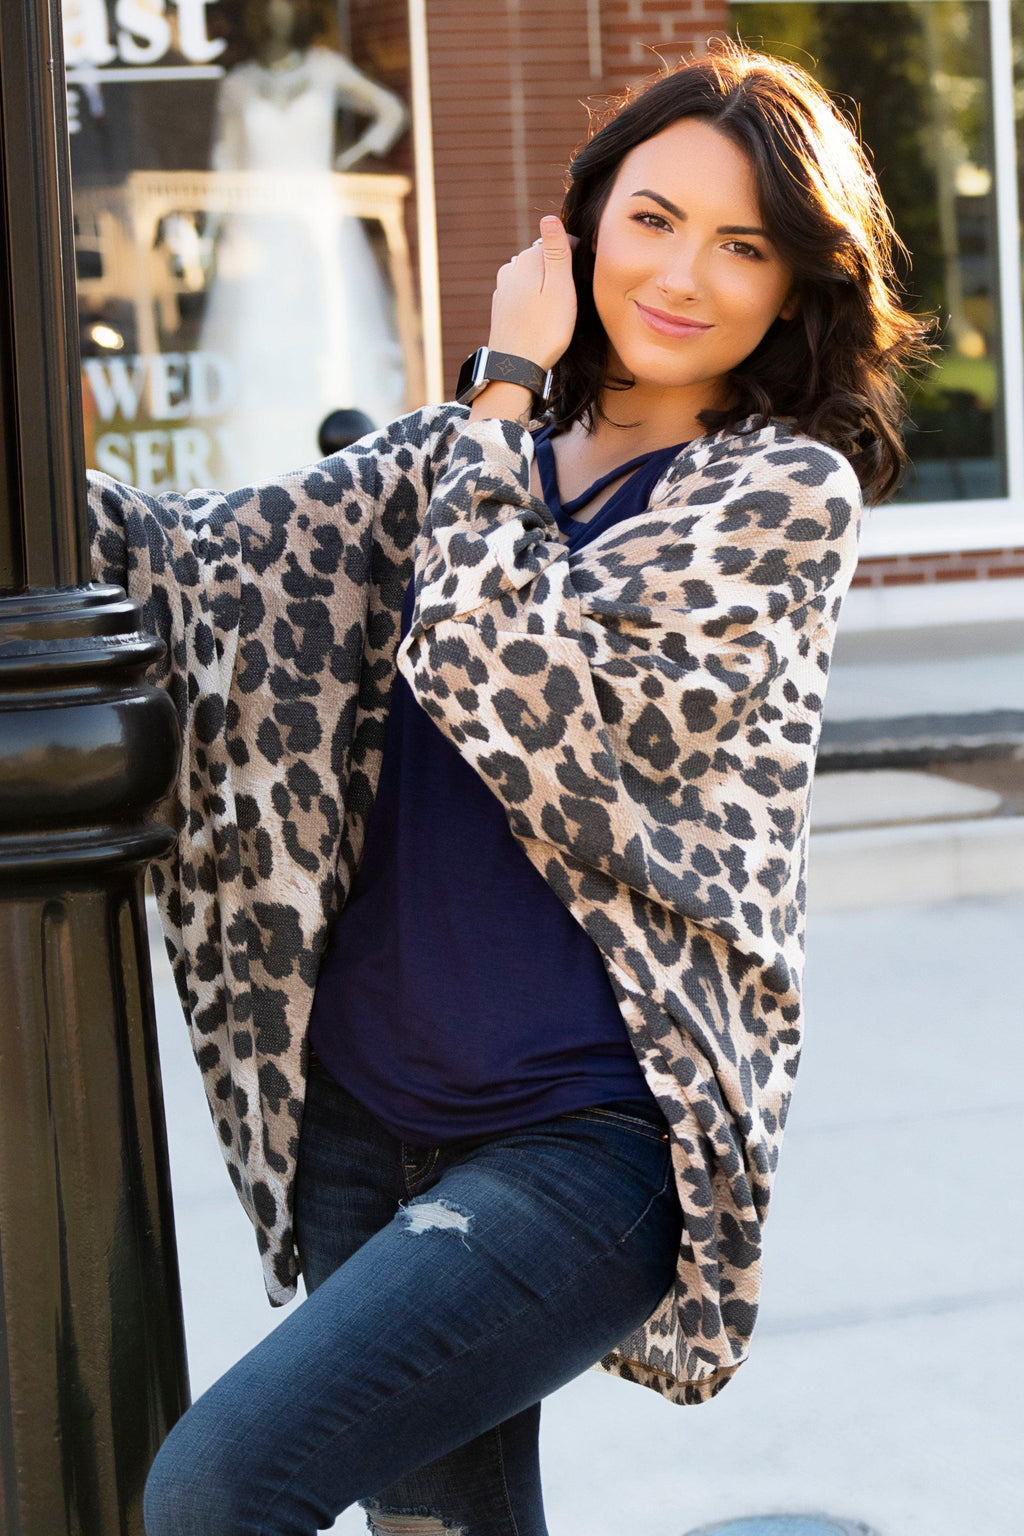 Beachy Nights Animal Print Cardigan - 512 Boutique